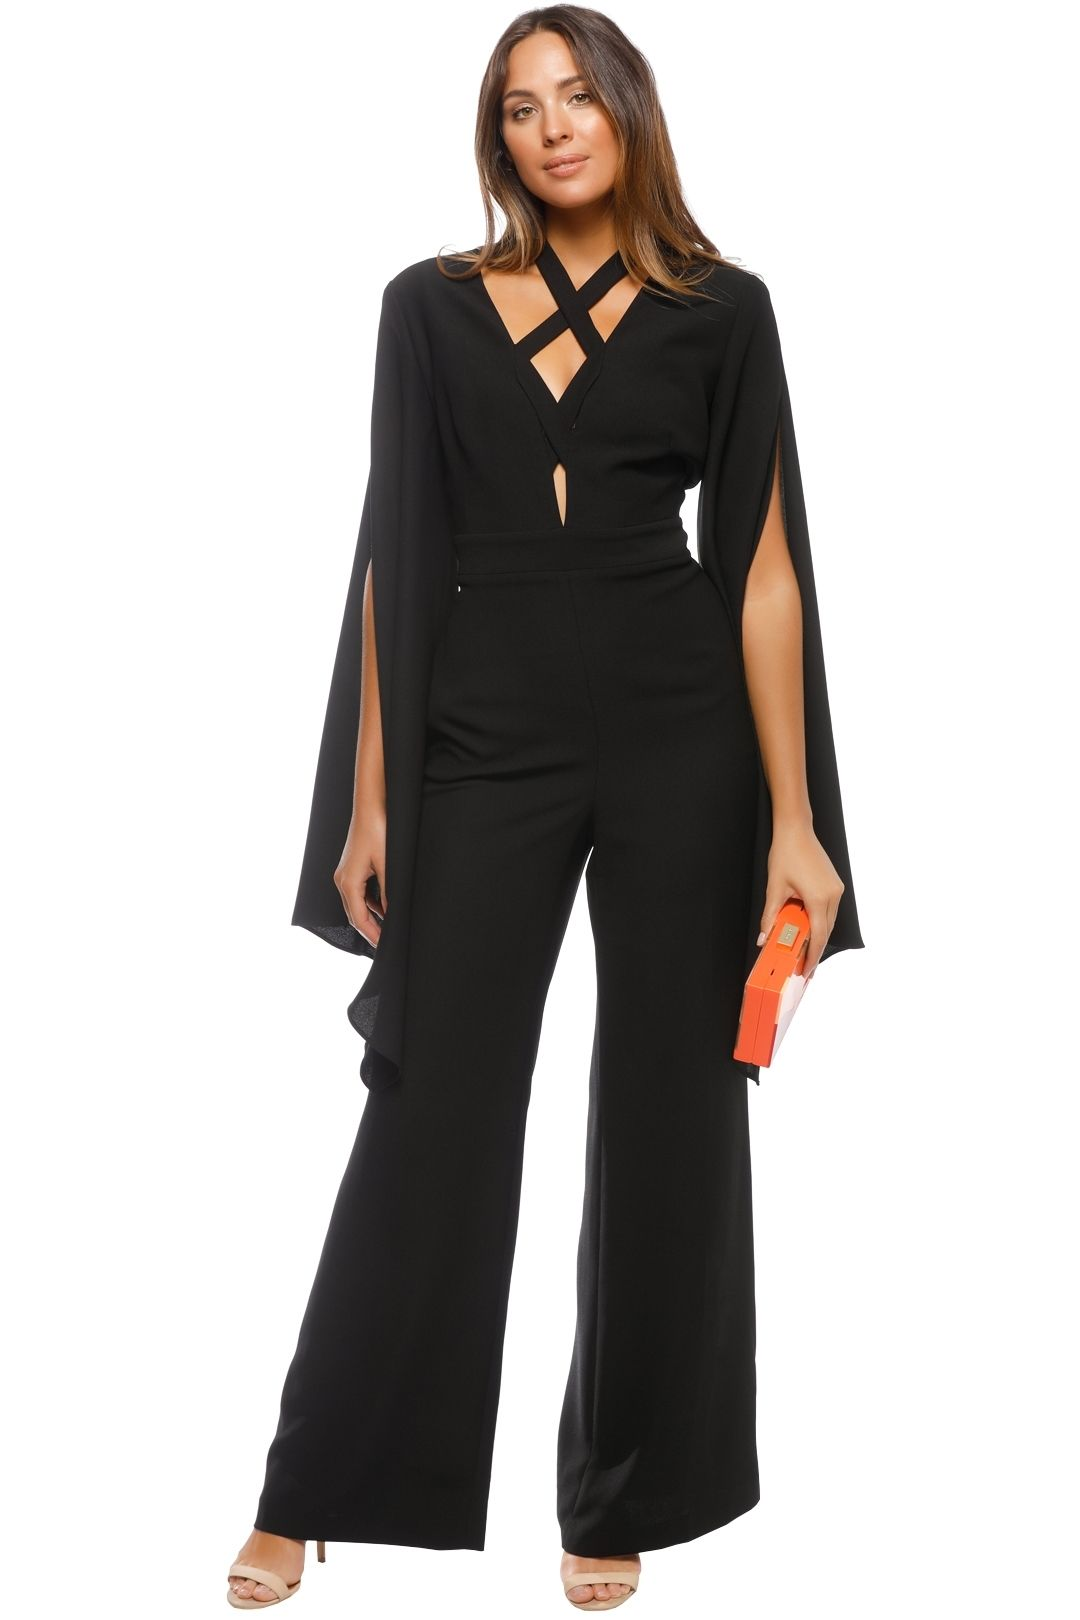 Carla Zampatti - Angels Wings Jumpsuit - Black - Front